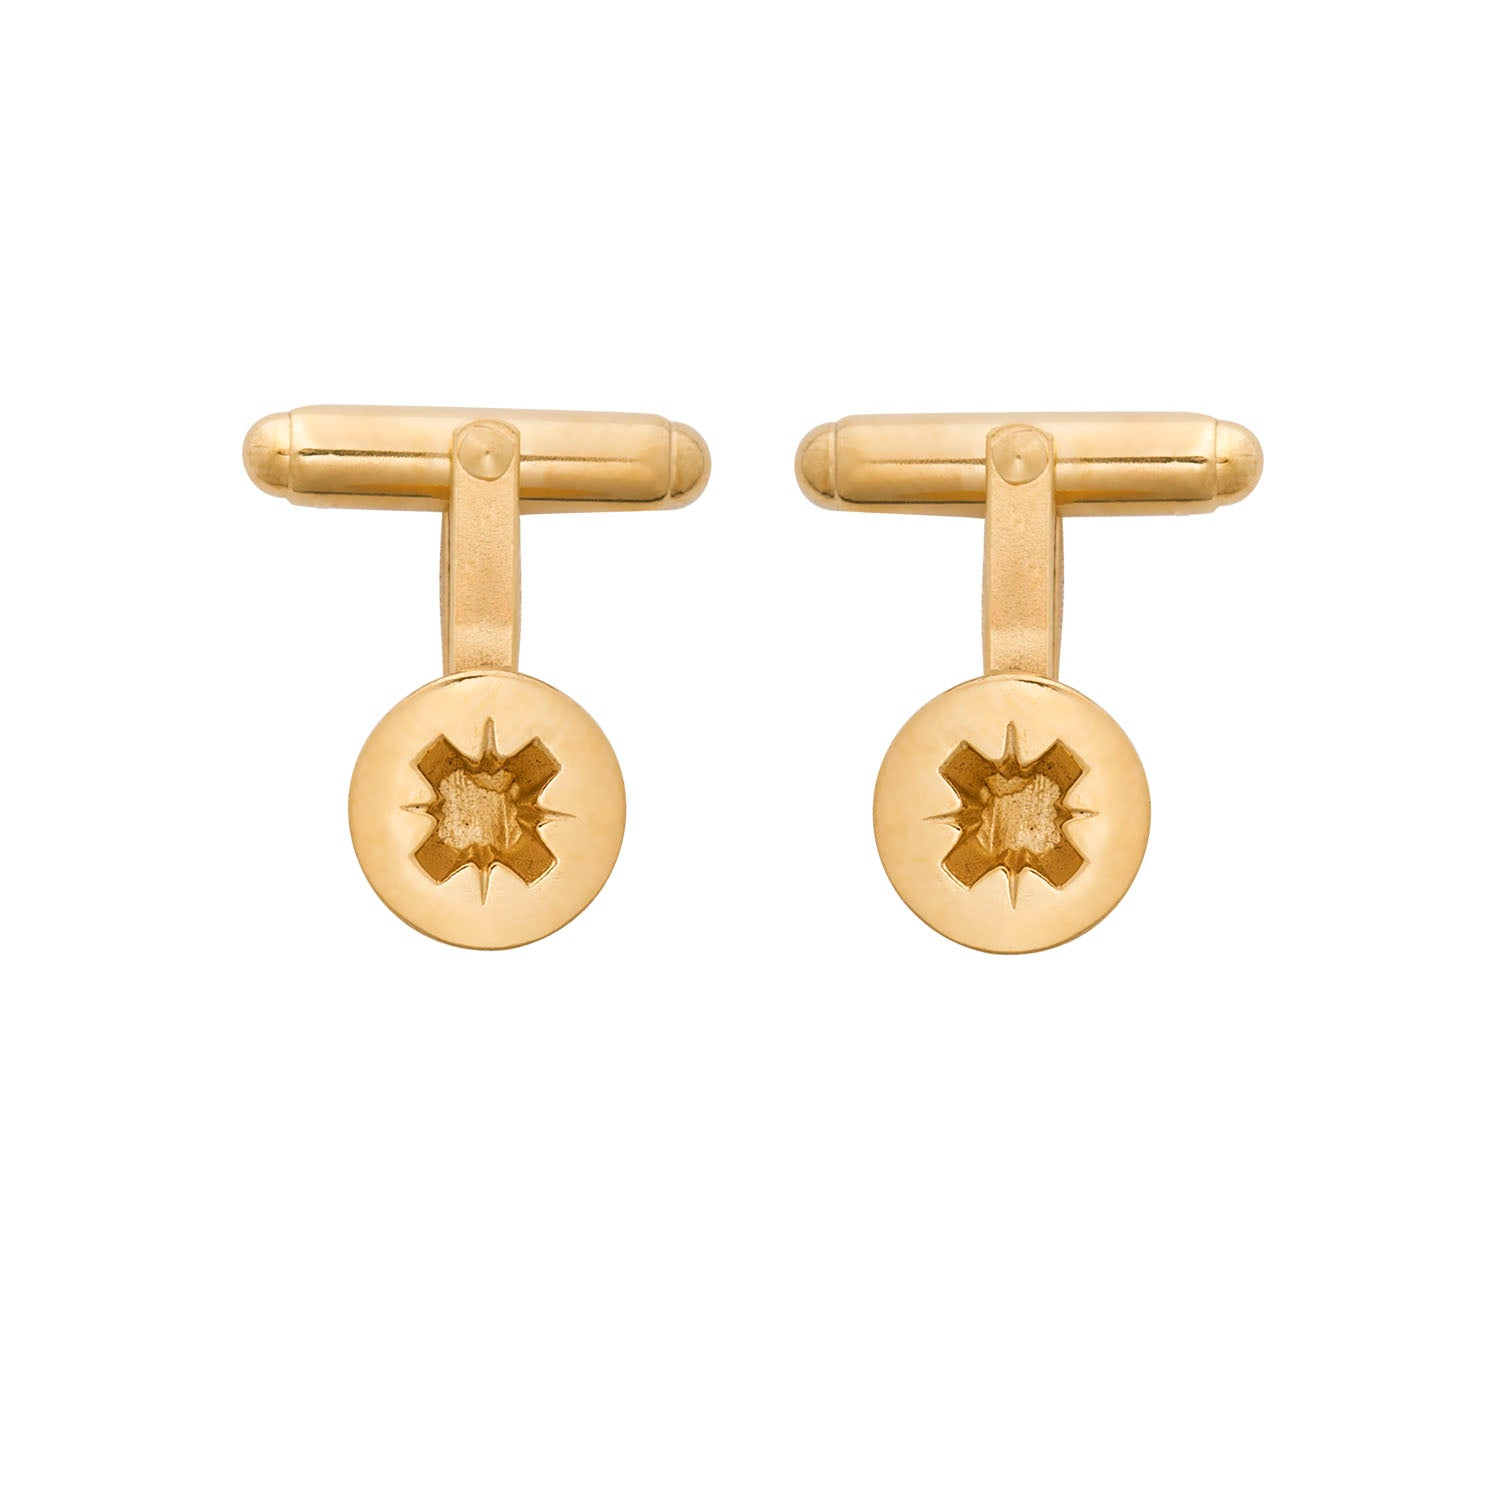 Edge Only Phillips-head Screw Cufflinks in sterling silver